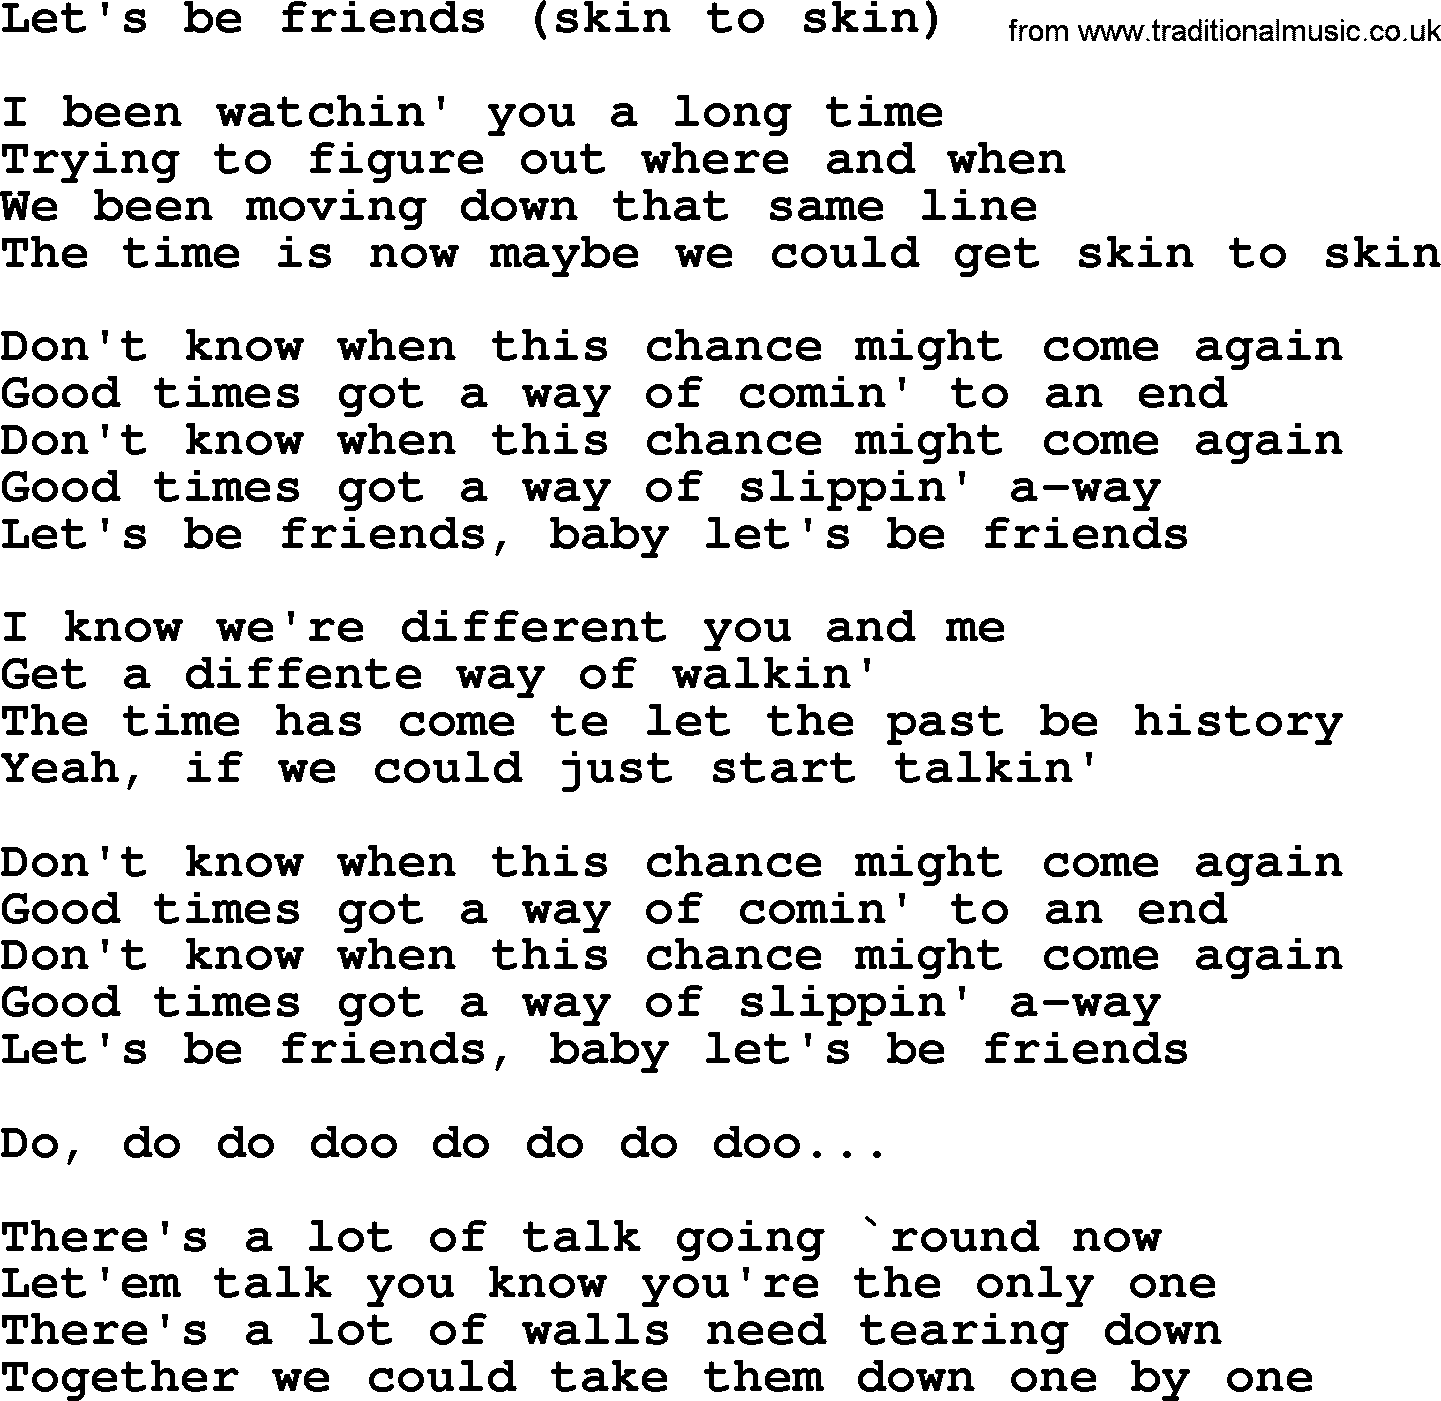 Lyrics for skin